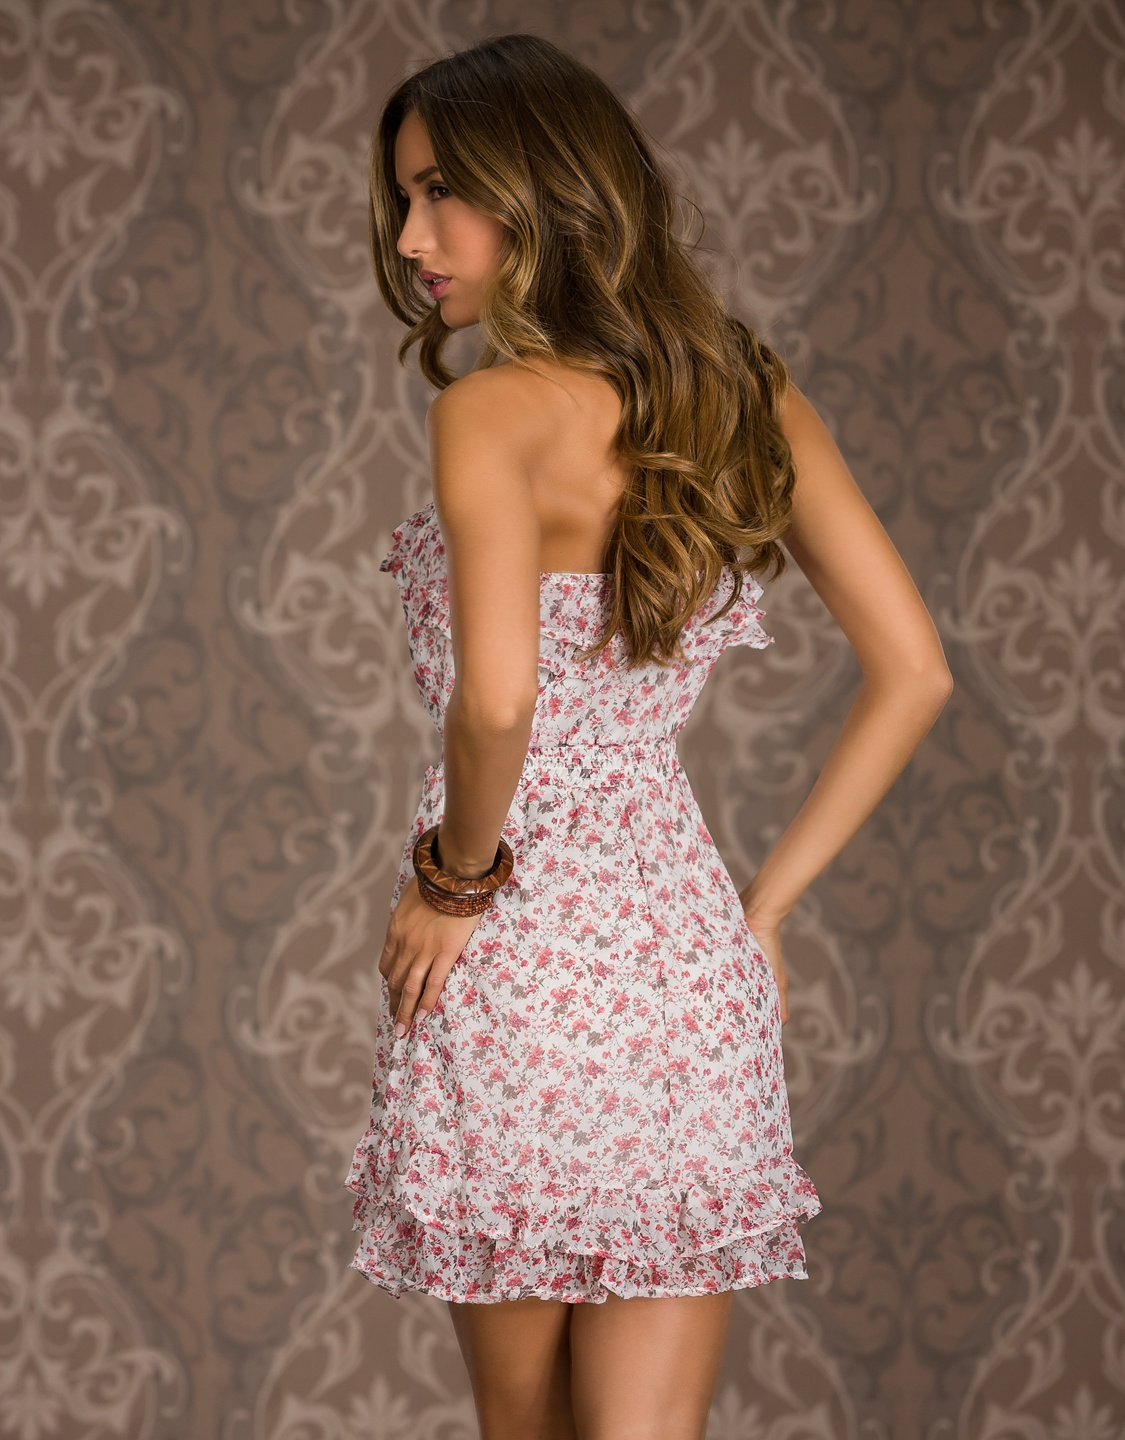 Pink Strapless Ruffled Summer Dress With Flower Print